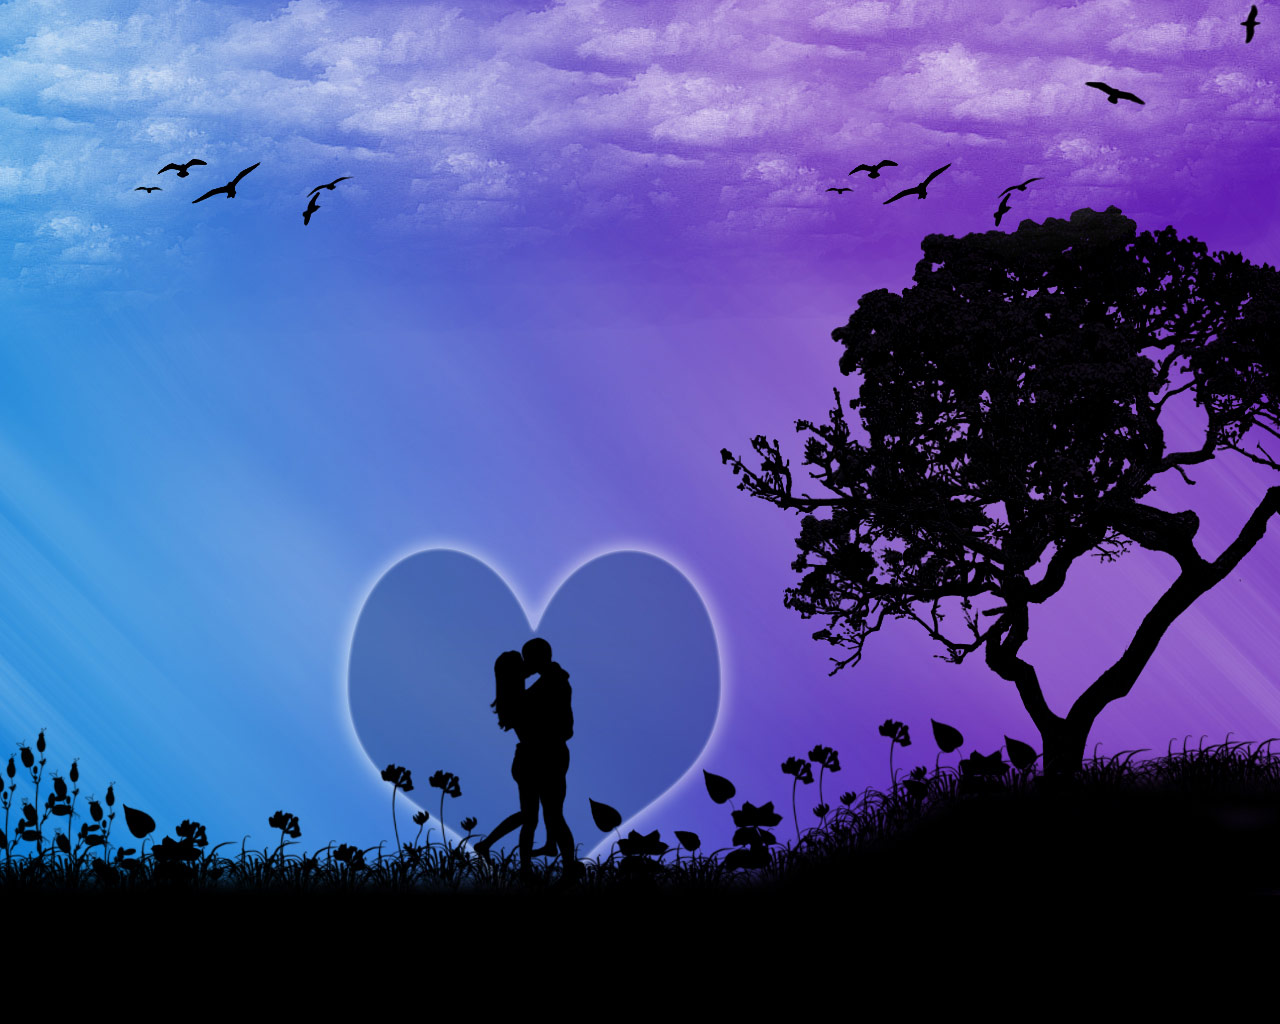 Love Wallpaper Pc Desktop : Free Wallpaper Dekstop: Real love wallpaper, love wallpapers free